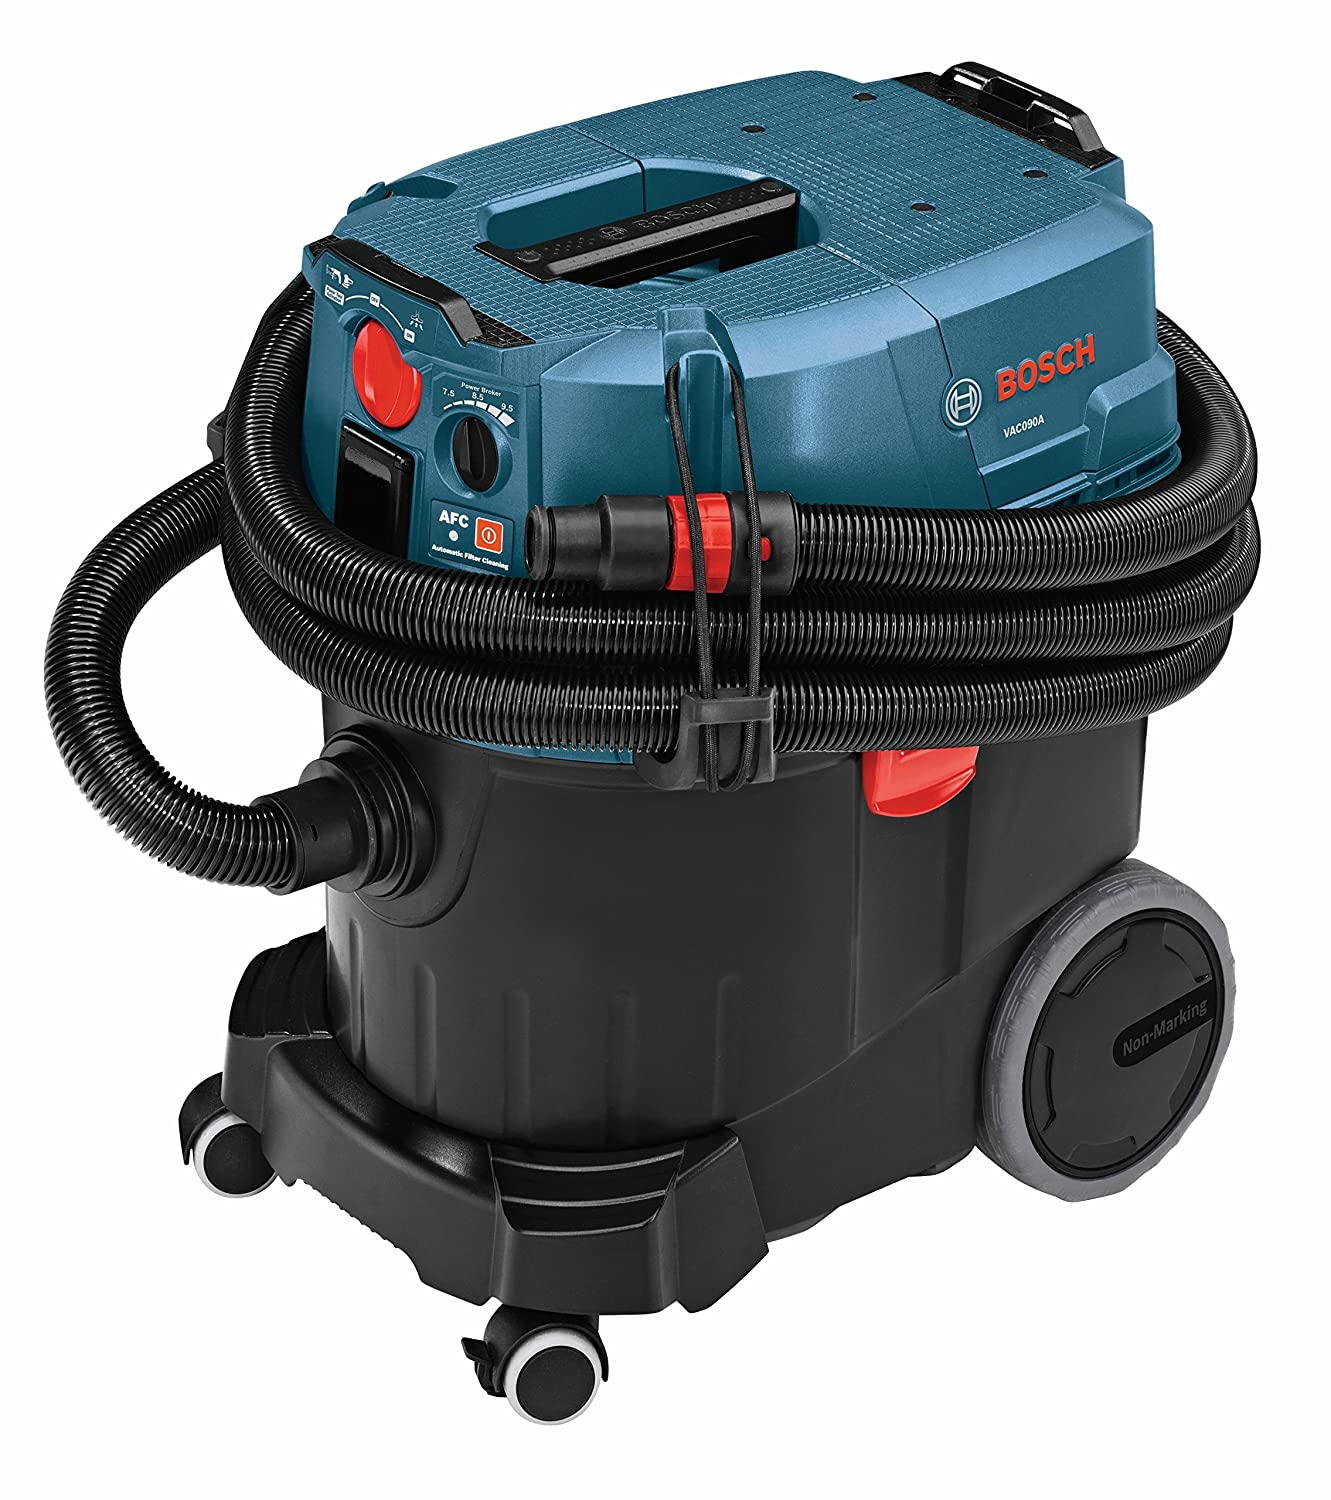 Bosch 9 Gallon Dust Extractor with Auto Filter Clean and HEPA Filter VAC090AH